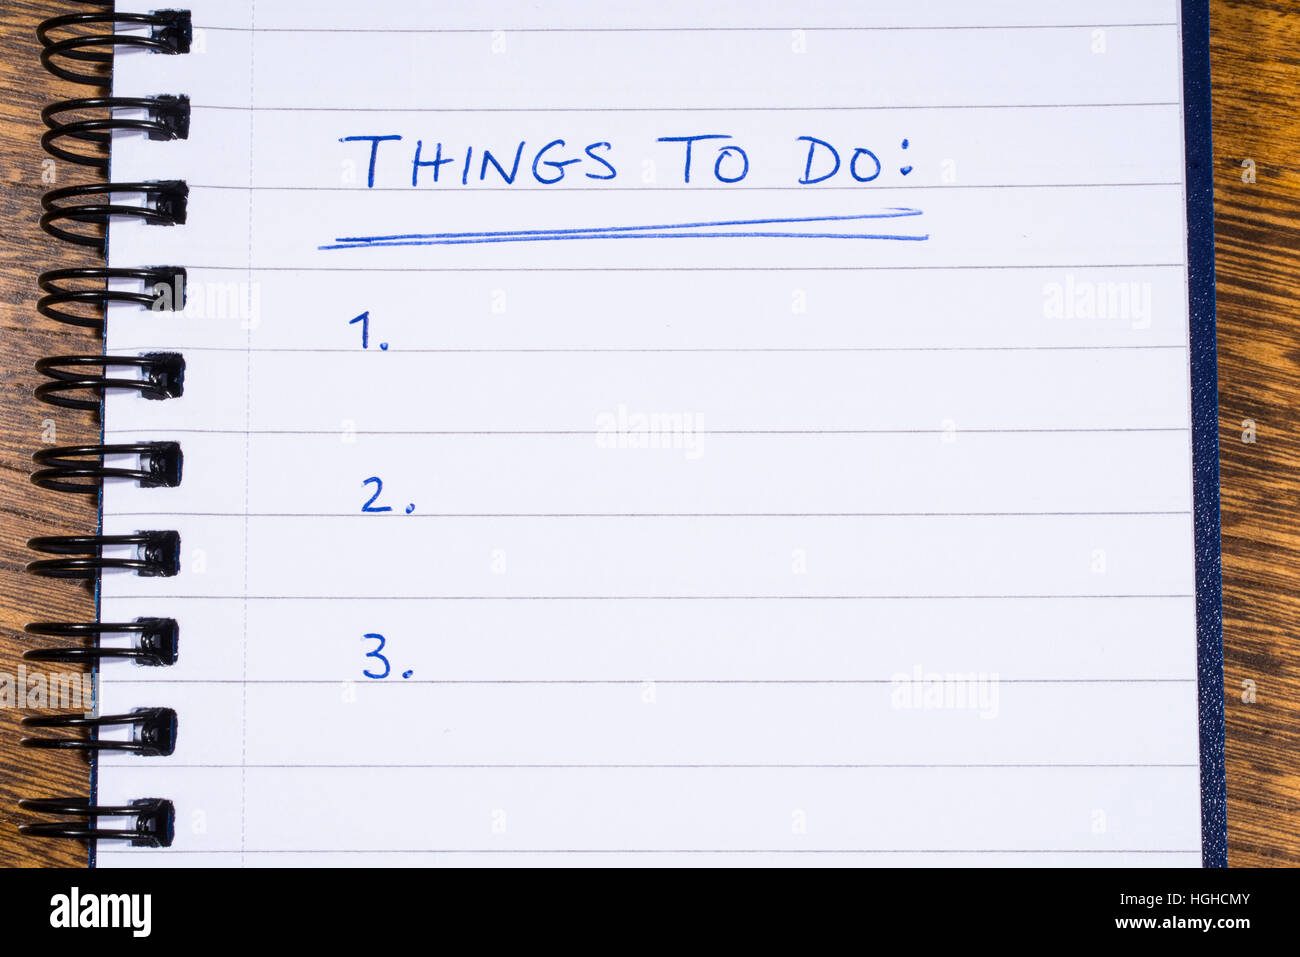 a checklist for things to do stock photo 130690251 alamy